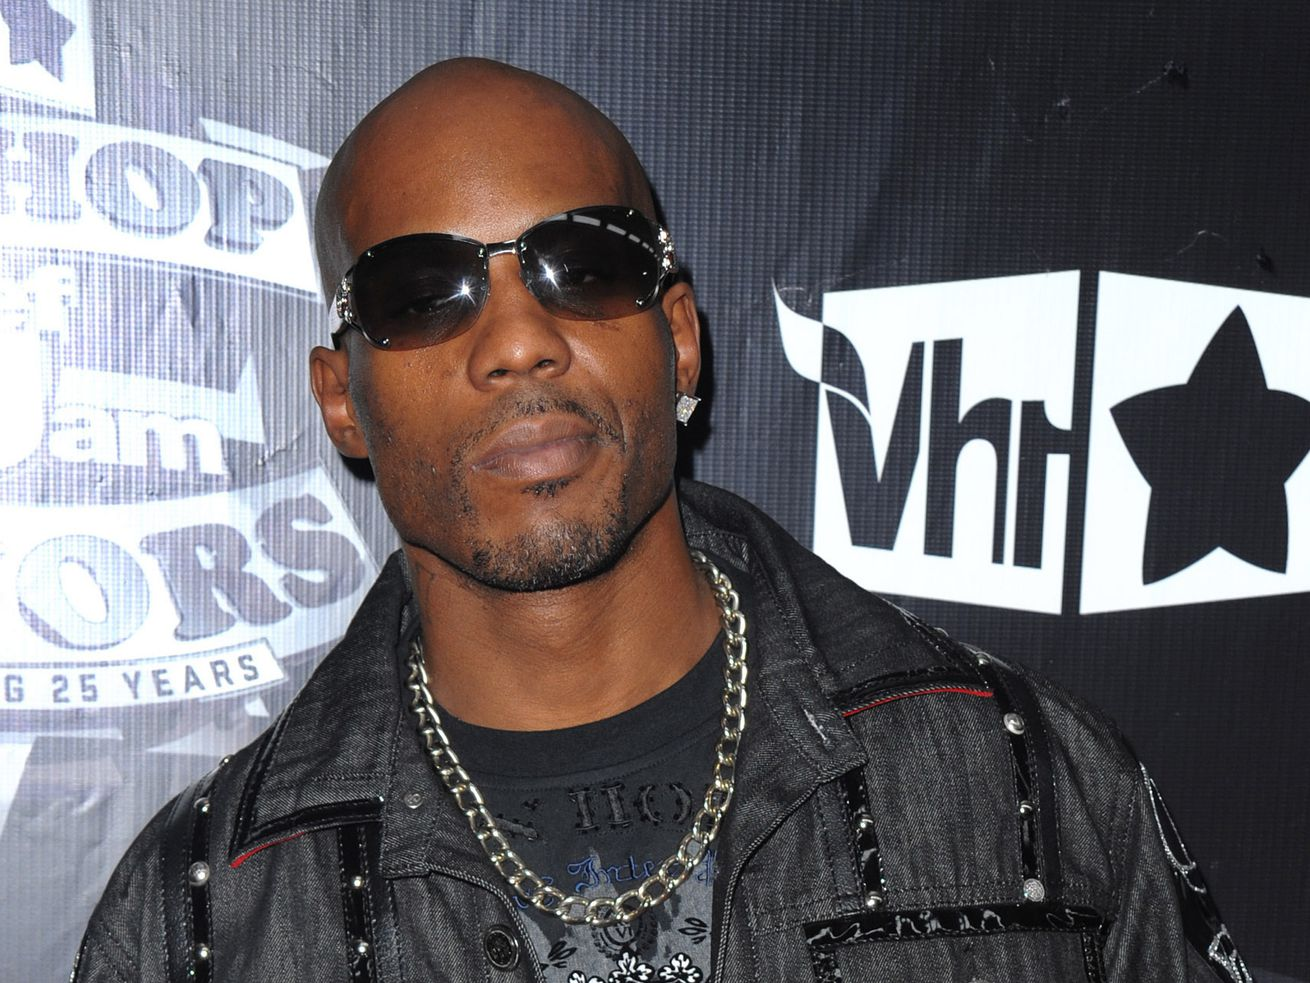 DMX arrives at the 2009 VH1 Hip Hop Honors at the Brooklyn Academy of Music, in New York. DMX's longtime New York-based lawyer, Murray Richman, said the rapper was on life support Saturday at White Plains Hospital.